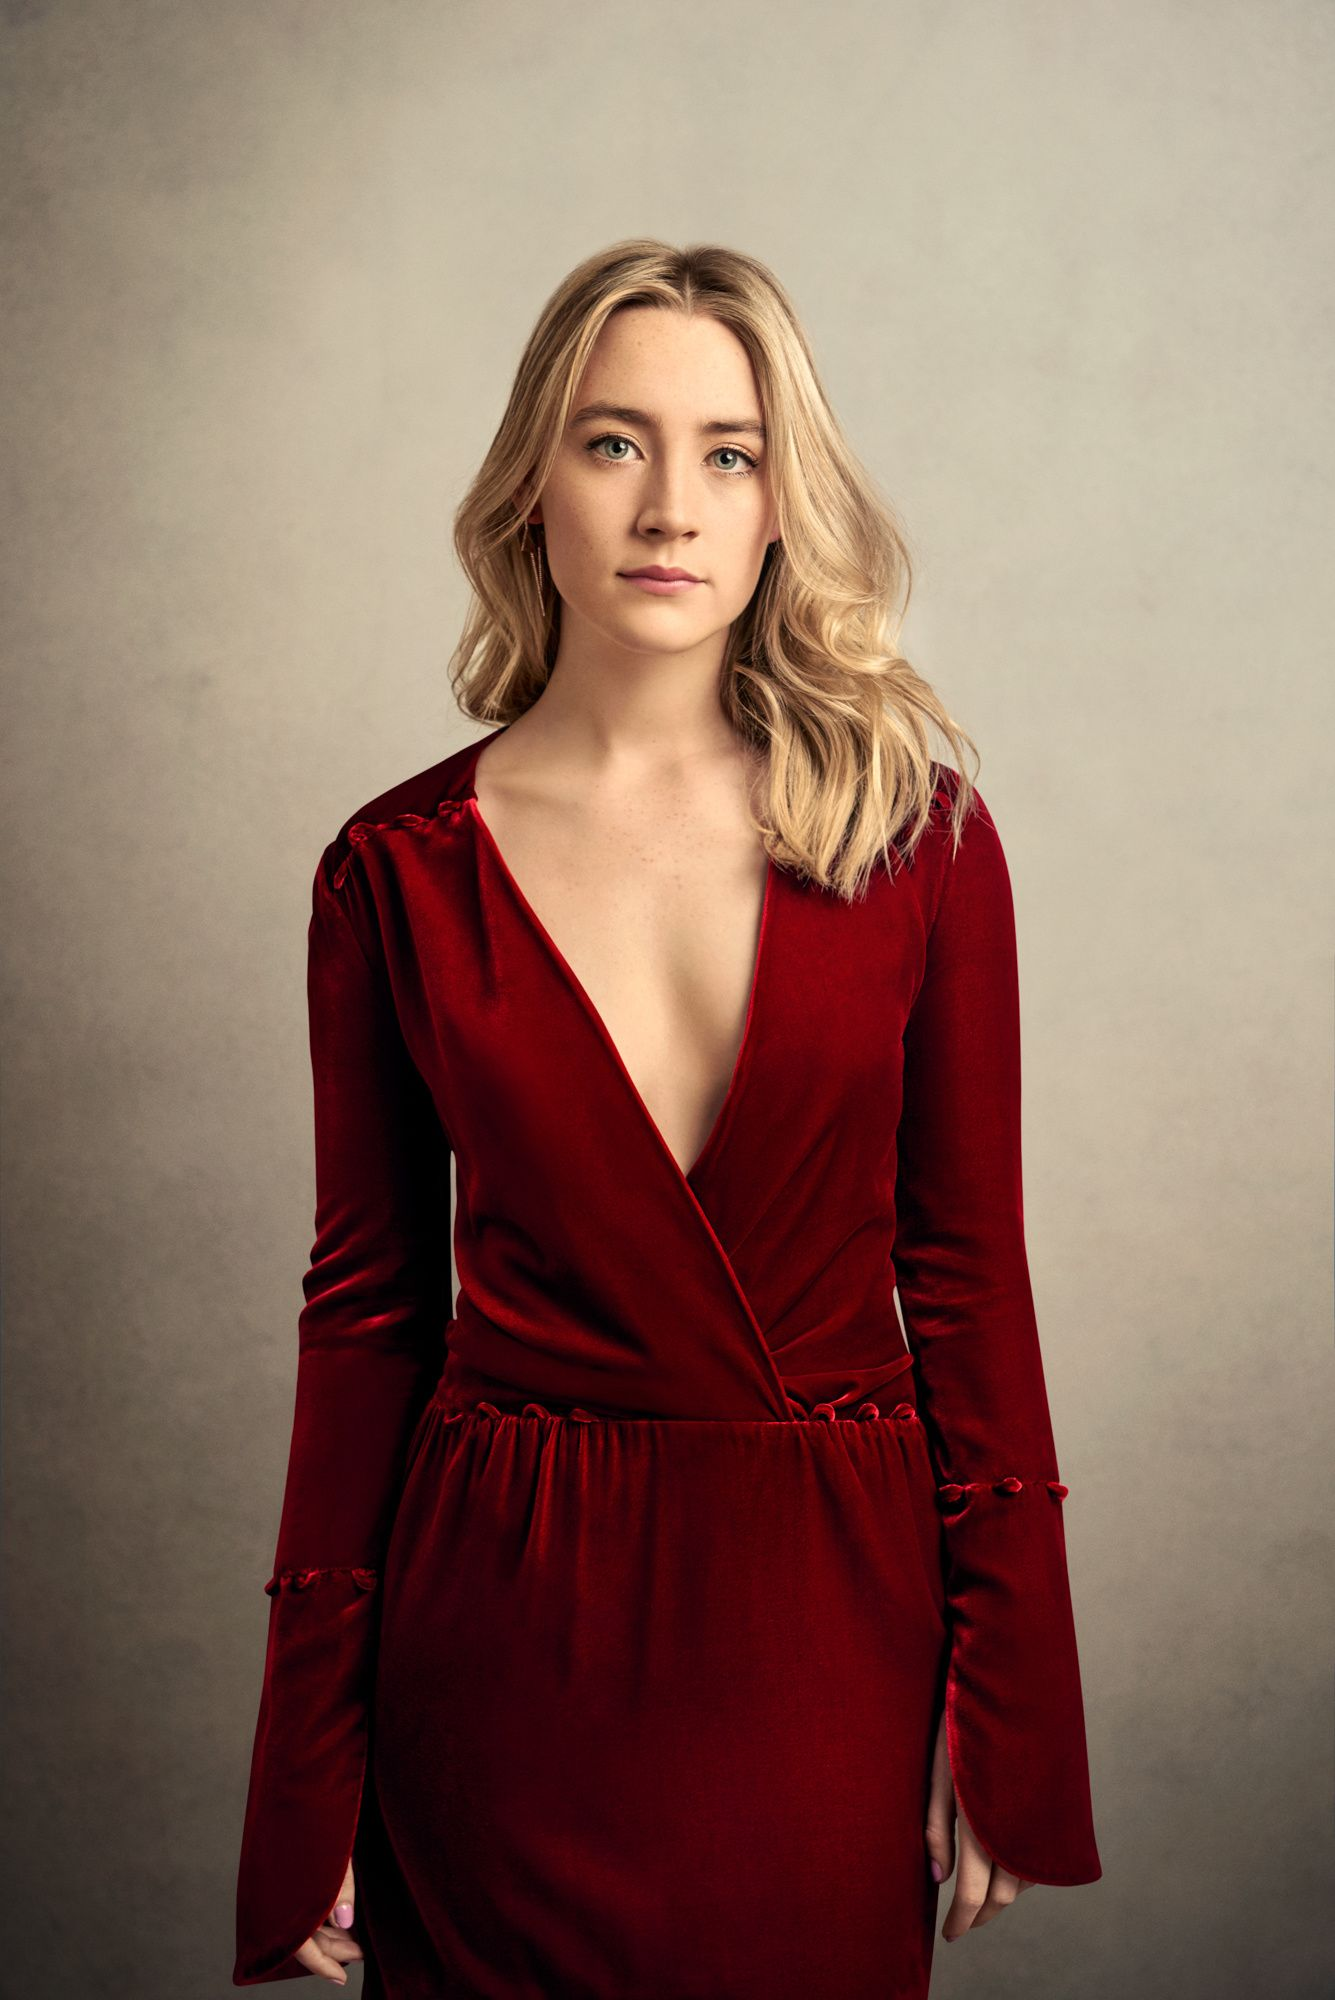 Saoirse Ronan in a red dress - Saoirse Ronan Net Worth, Movies, Family, Boyfriend, Pictures and Wallpapers